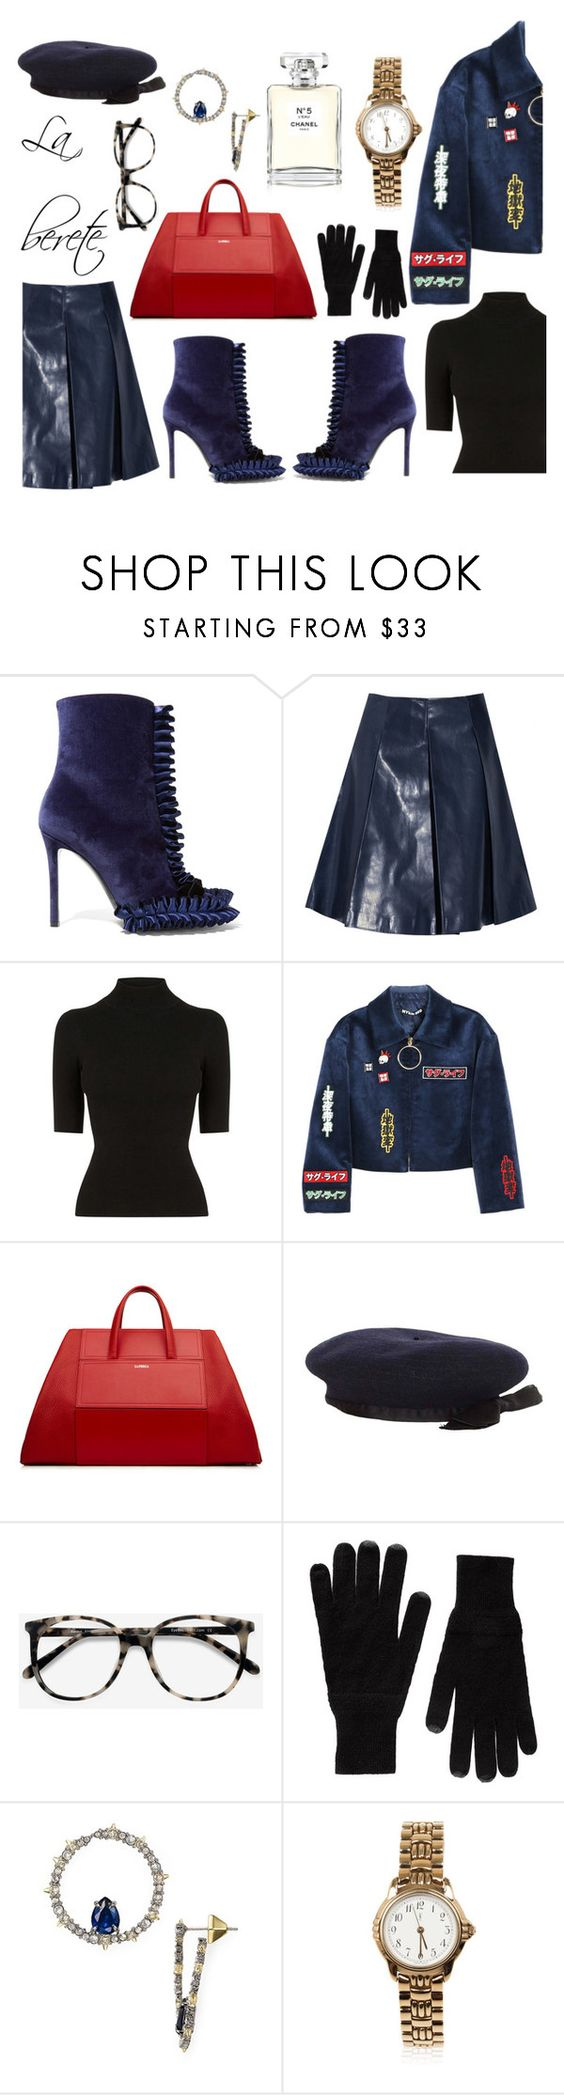 """Untitled #796"" by adda21 ❤ liked on Polyvore featuring Marco de Vincenzo, Versace, Oasis, Hyein Seo, Chanel, Ace, Splendid, Alexis Bittar, Yves Saint Laurent and versace"